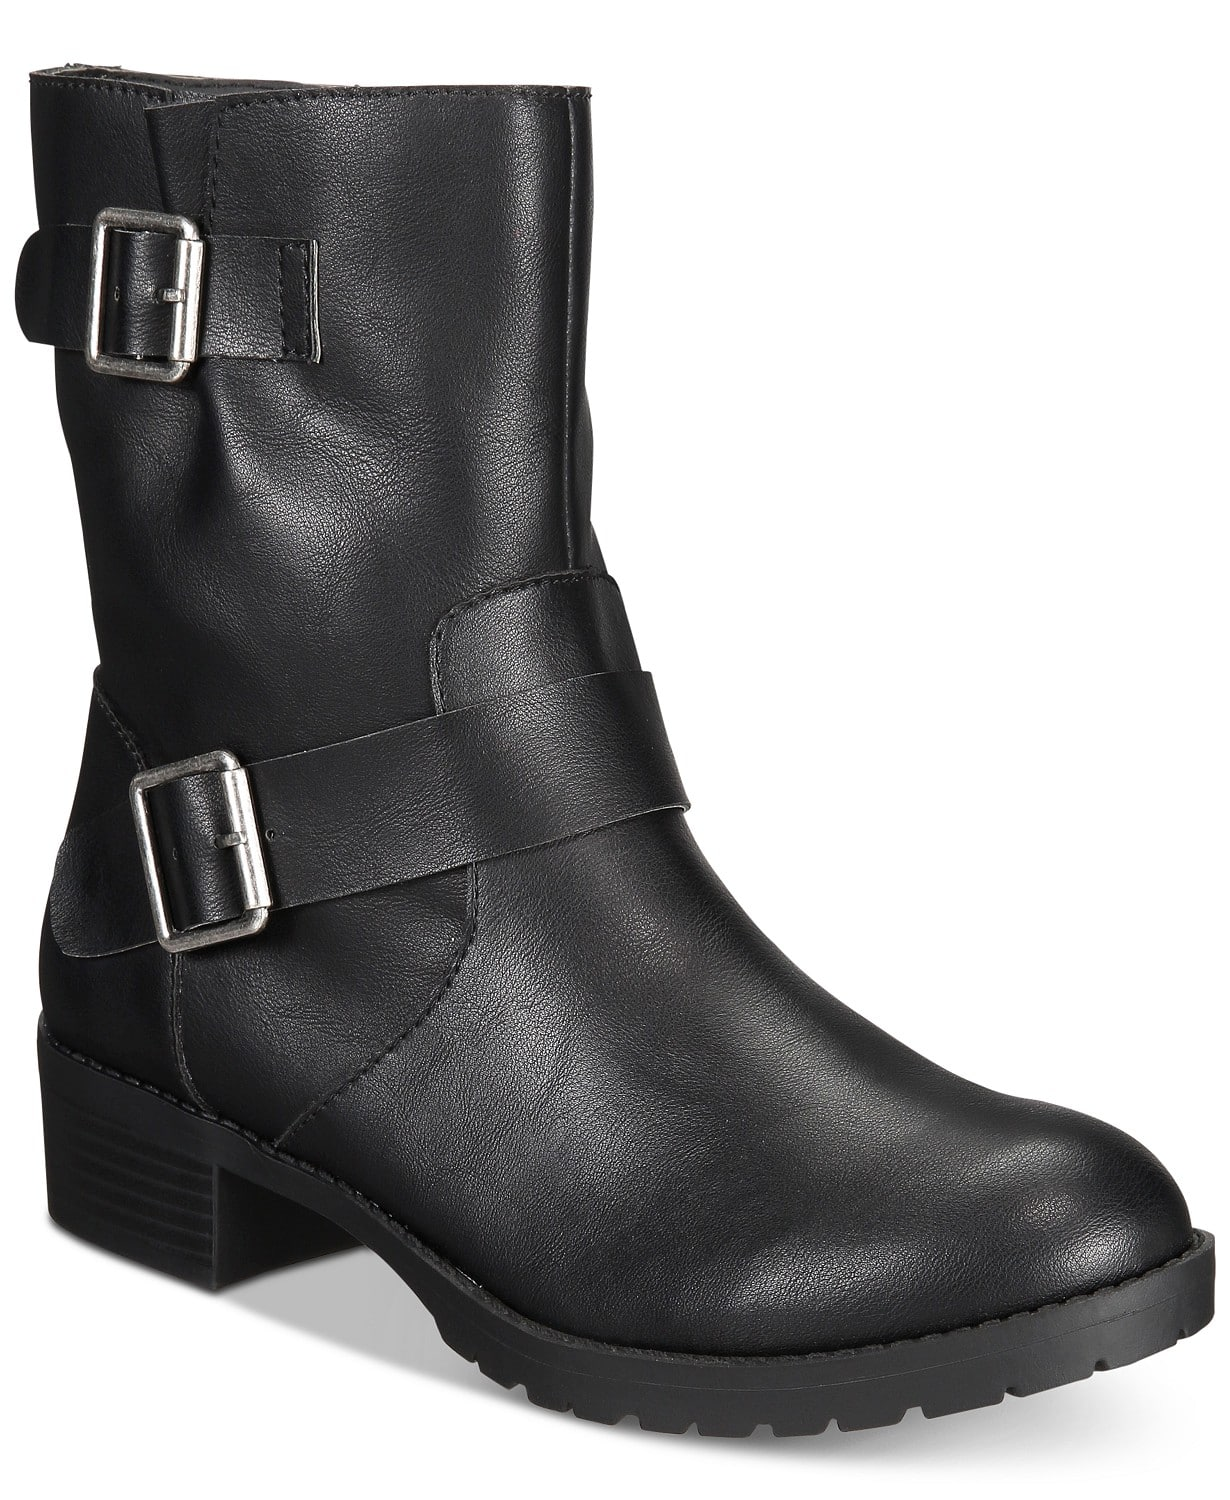 f24fdb86c20 Macy's: 75% Off Select Women's Shoes: Style & Co Gianara Moto ...